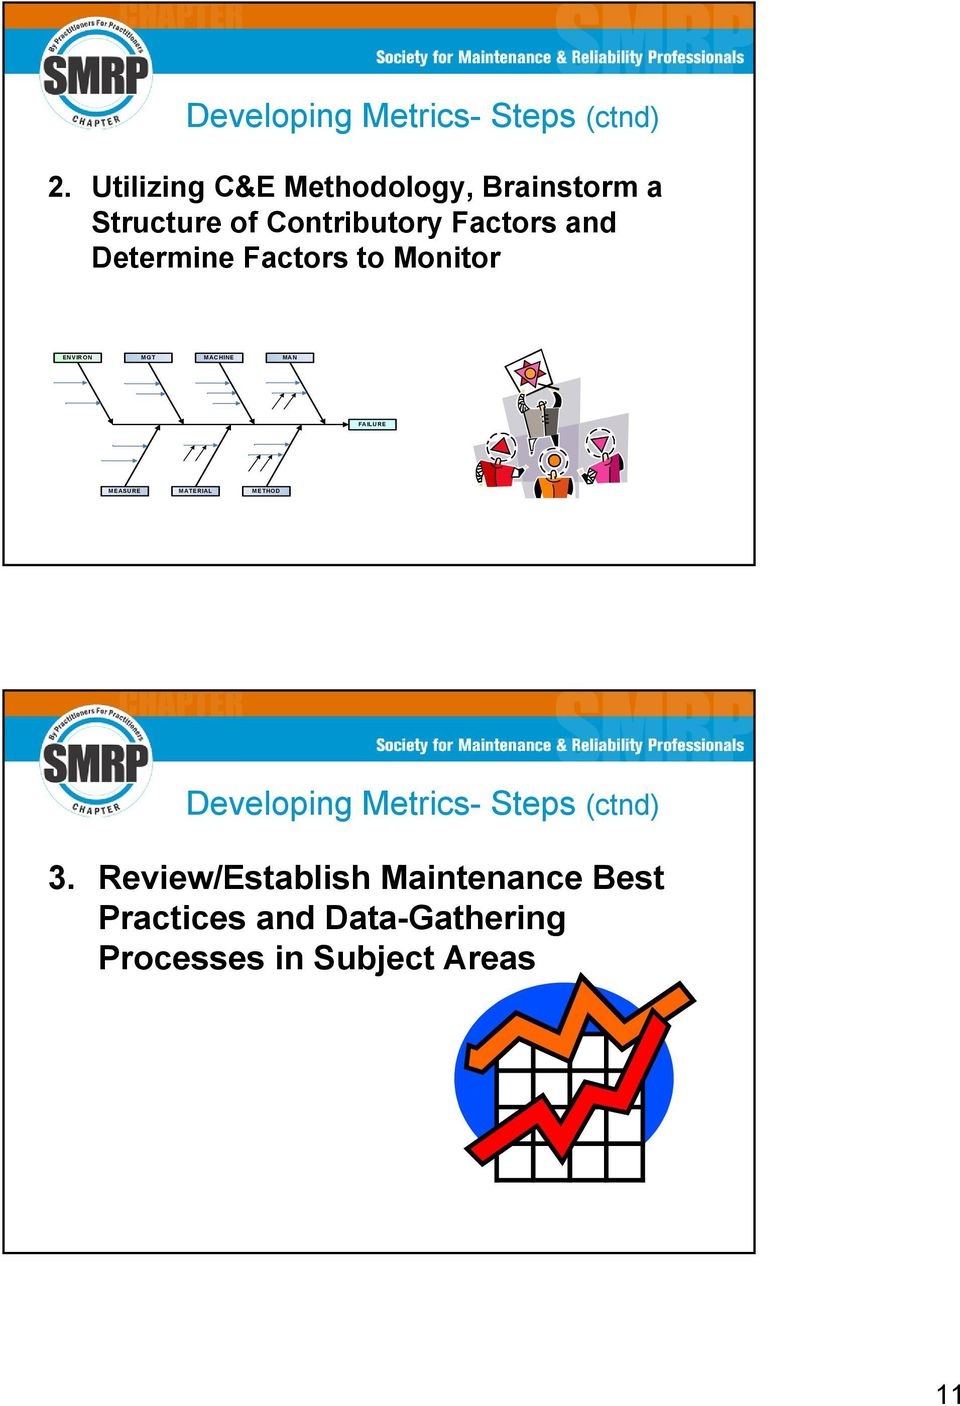 Determine Factors to Monitor ENVIRON MGT MACHINE MAN FAILURE MEASURE MATERIAL